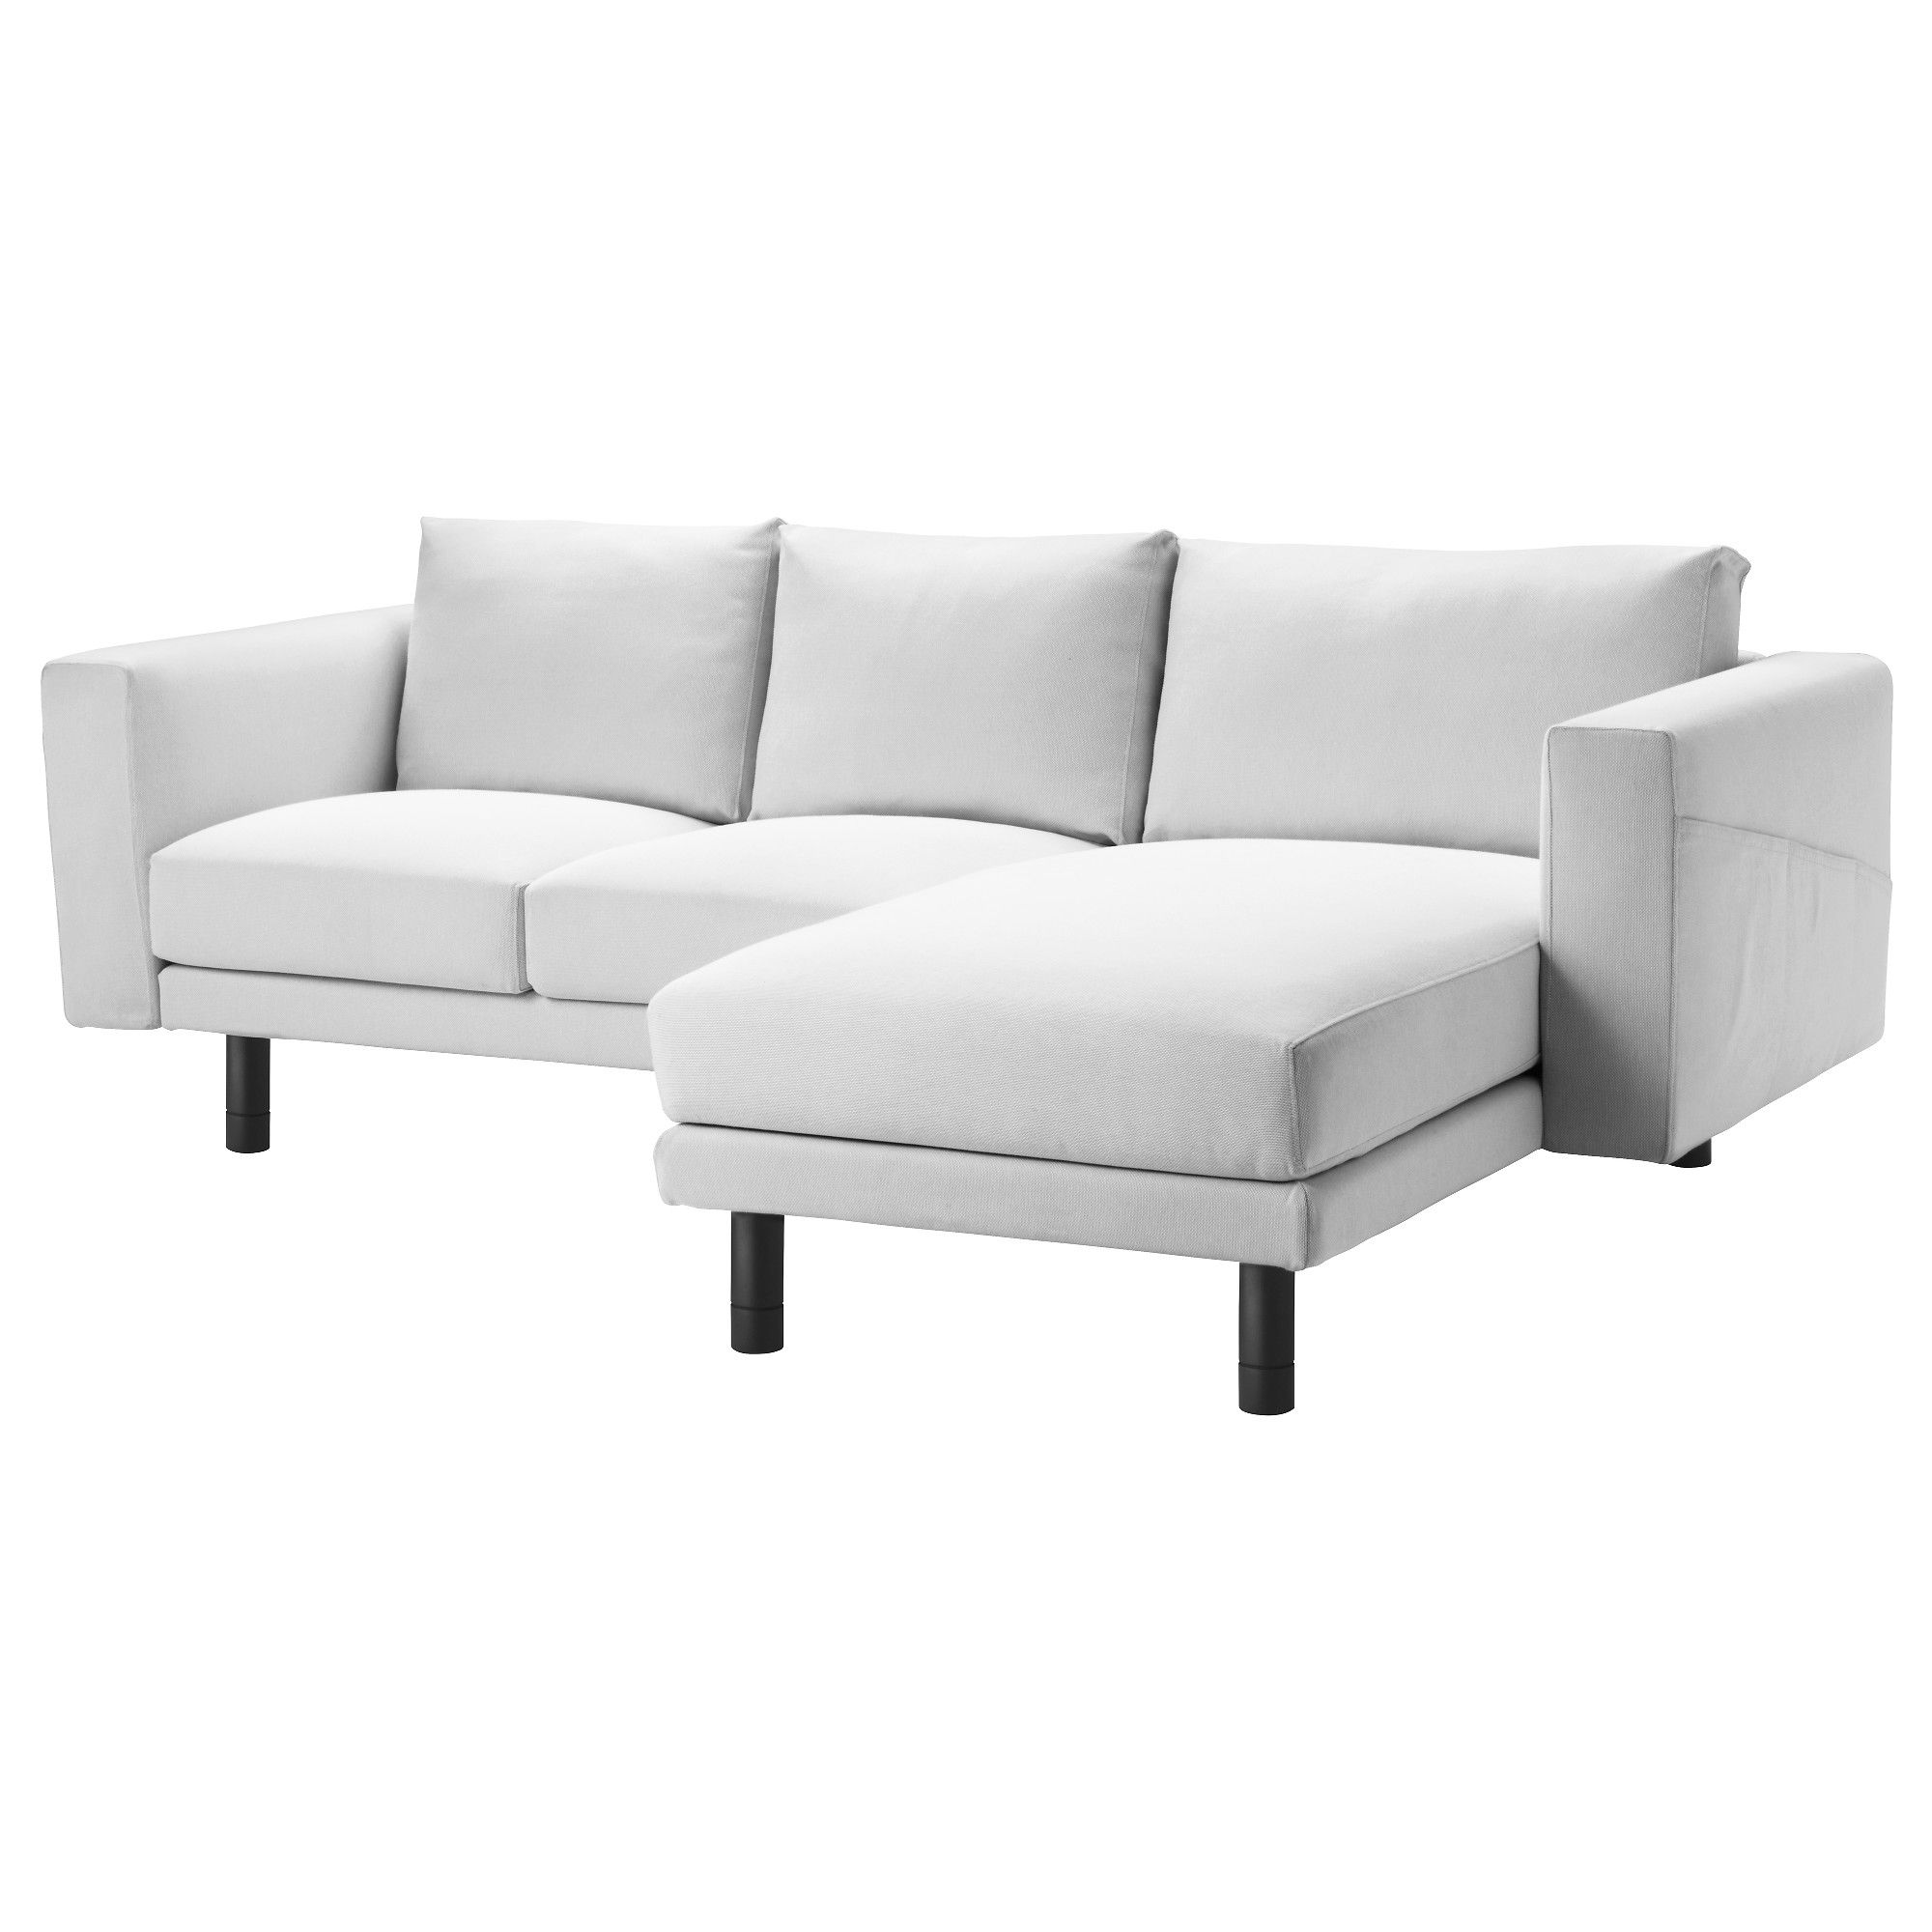 Suche Sofa Pin By Ladendirekt On Sofas Couches Pinterest 2er Sofa